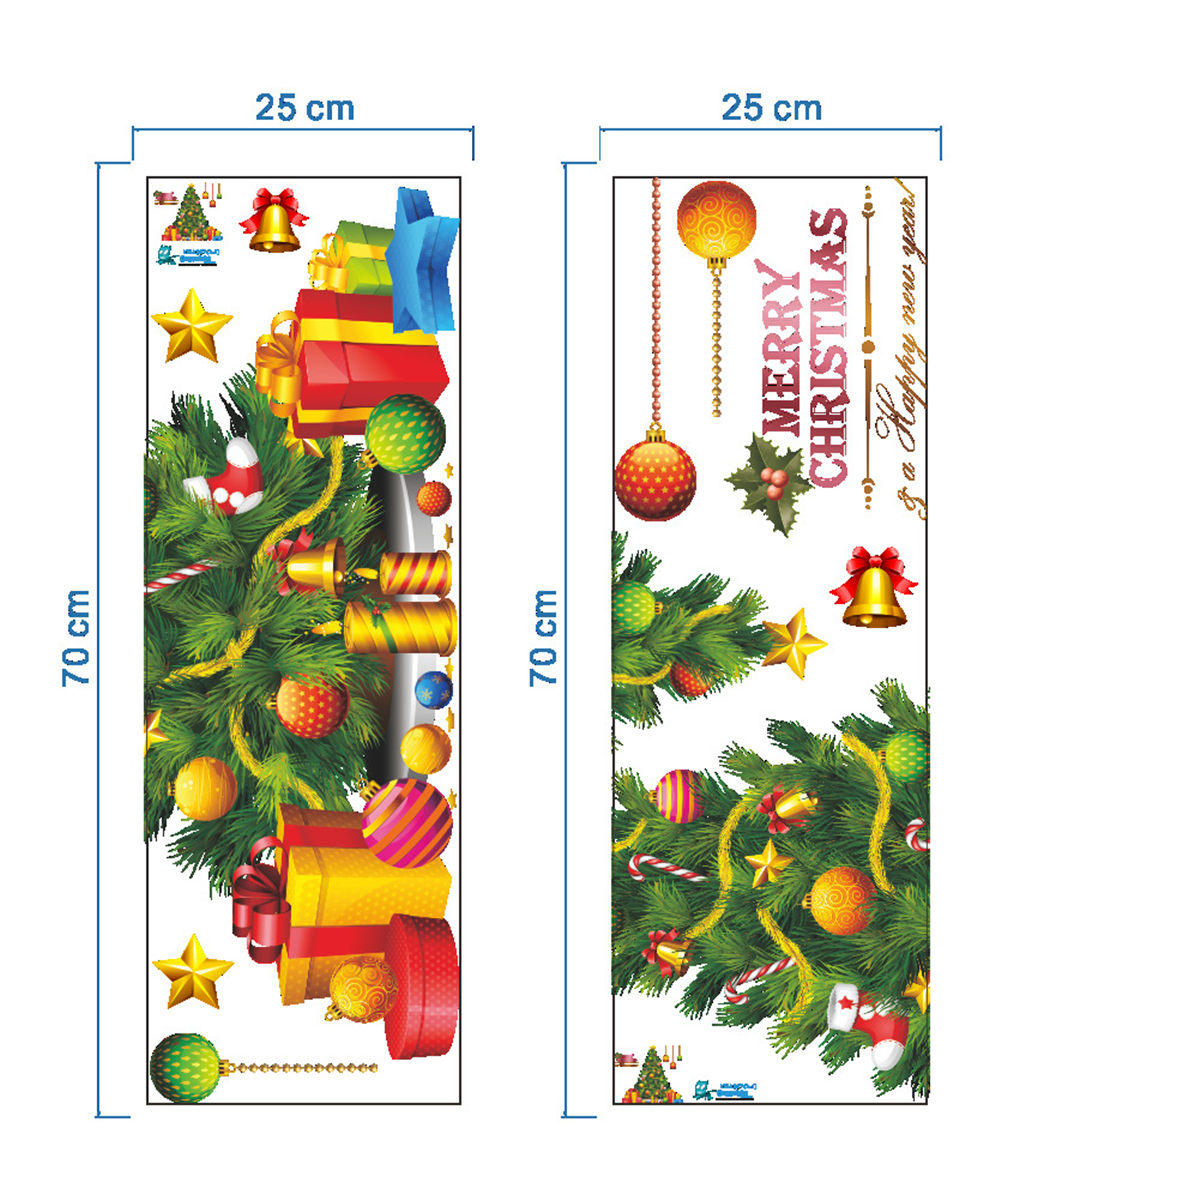 PVC Christmas Tree Wall Sticker Removable Xmas Paredes Windows Door Wall Stickers Posters New Year Home Decorations Ornaments